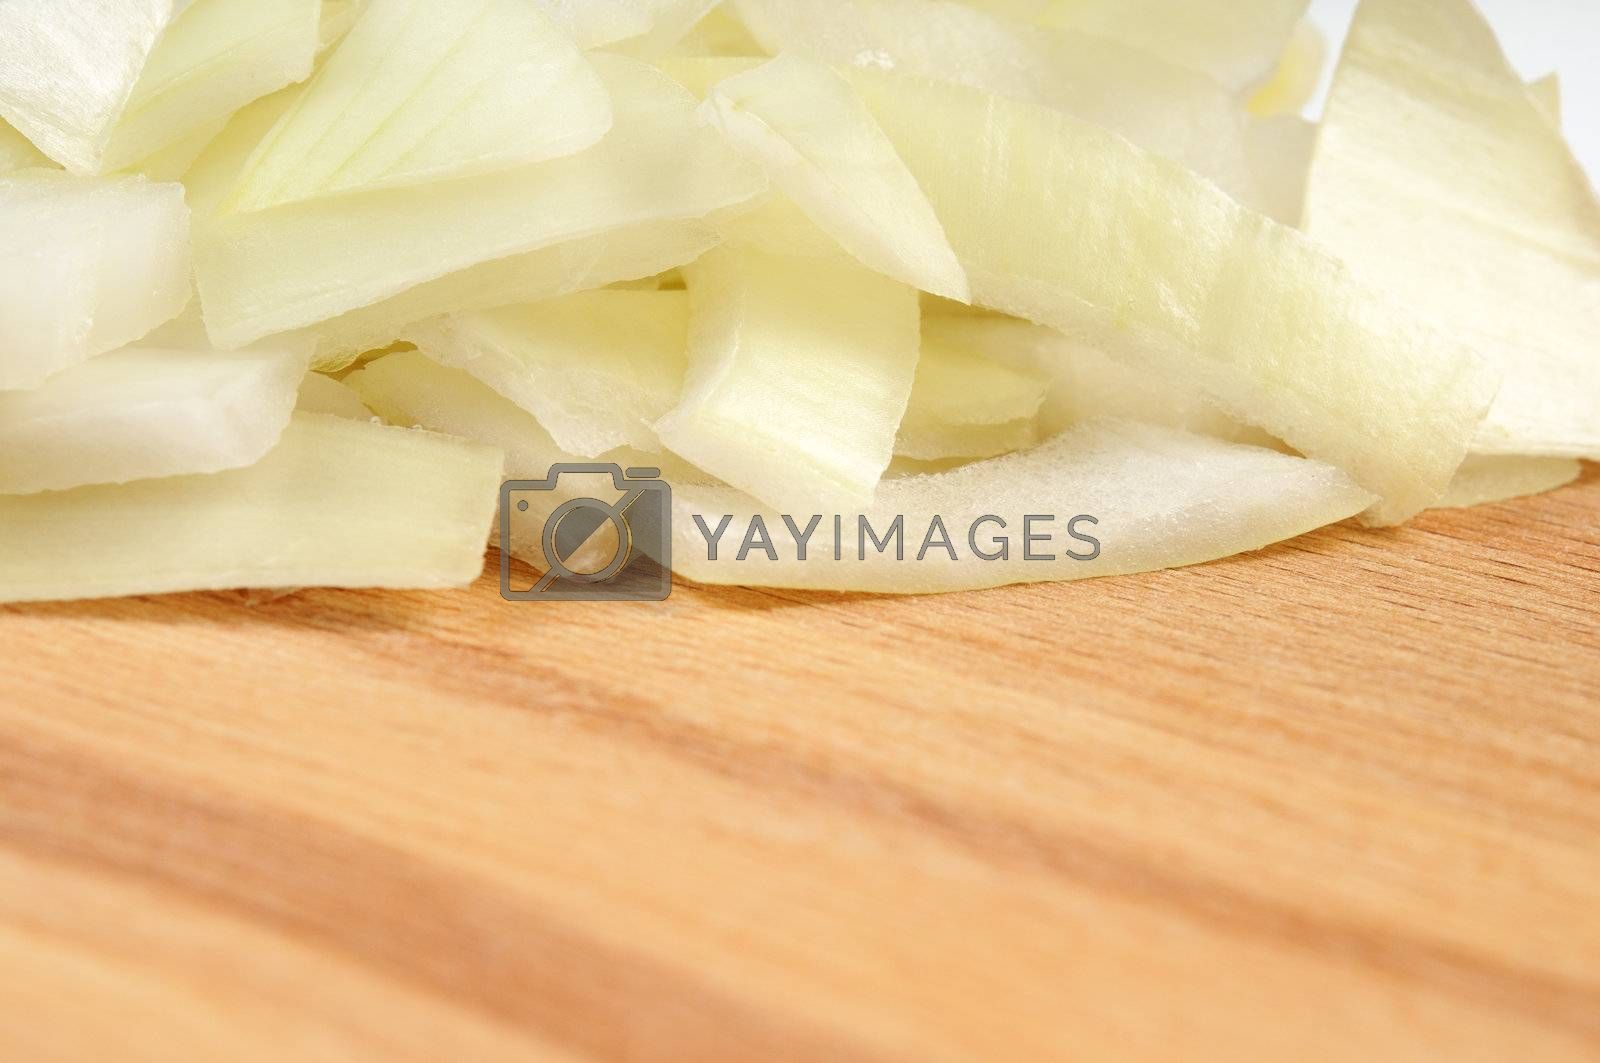 Chopped onions on a wooden board. Isolated on white. Shallow depth of field